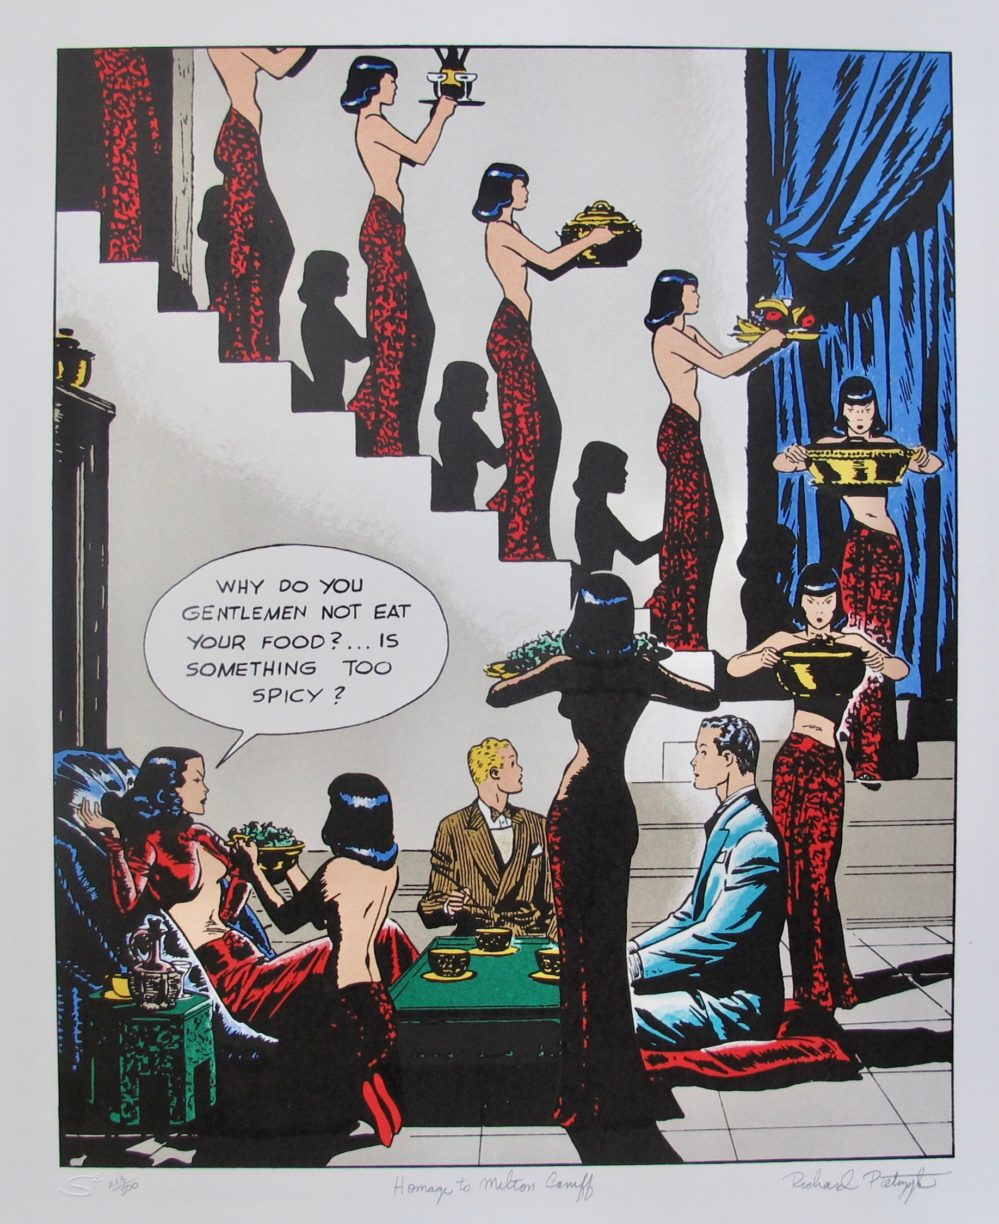 Homage to Milton Caniff Terry & the Pirates Dragon Lady Hand Signed Lithograph